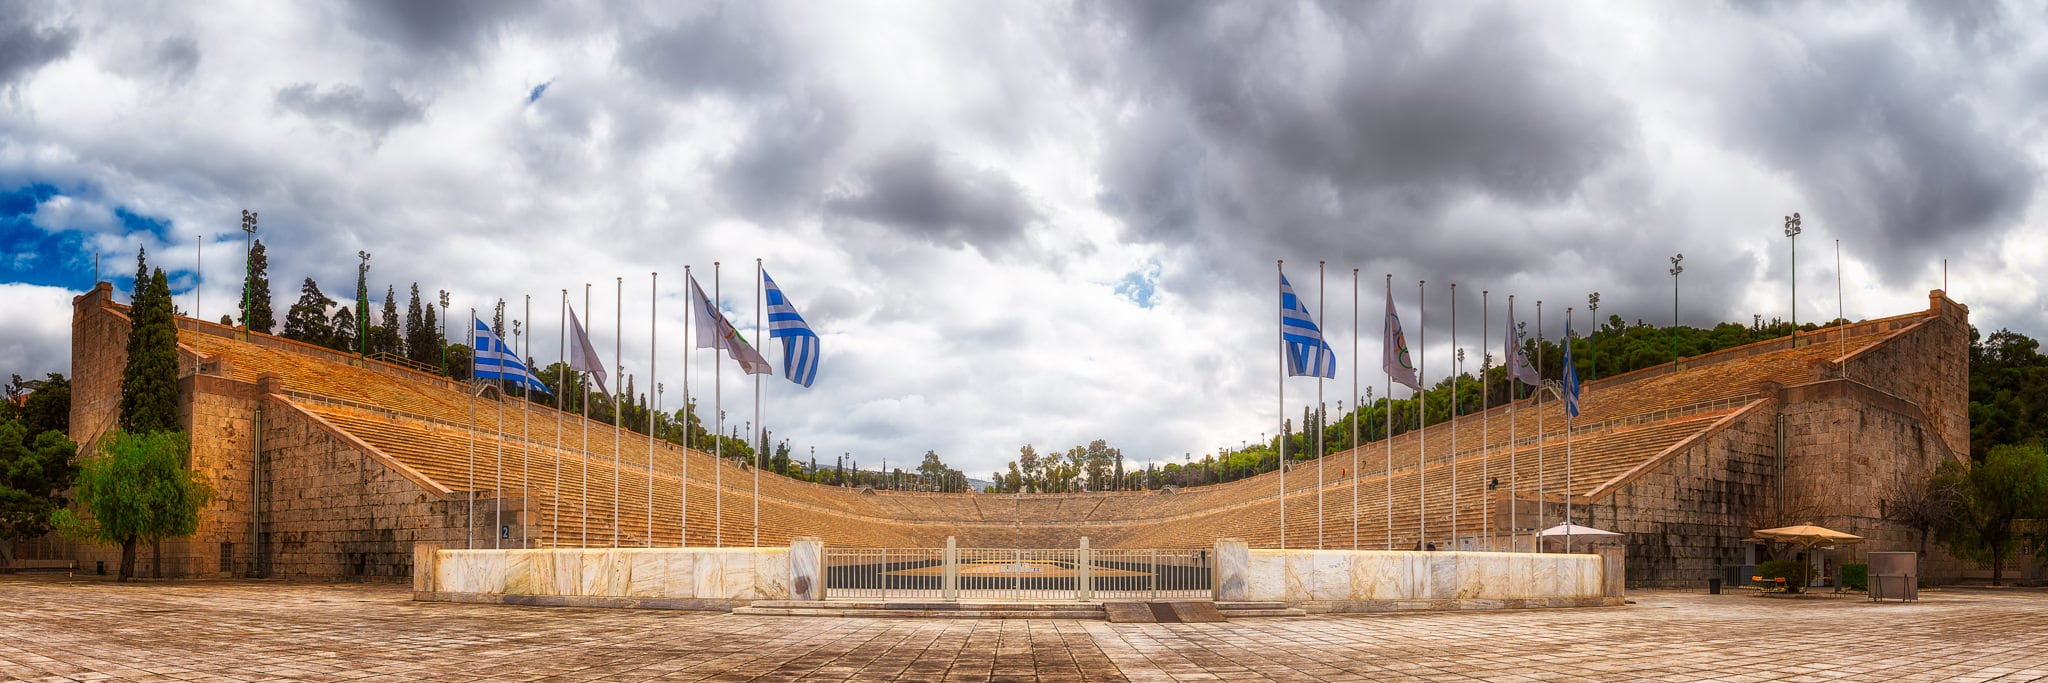 A beautiful day image of the Panathenaic Stadium in Athens that was created entirely of marble.